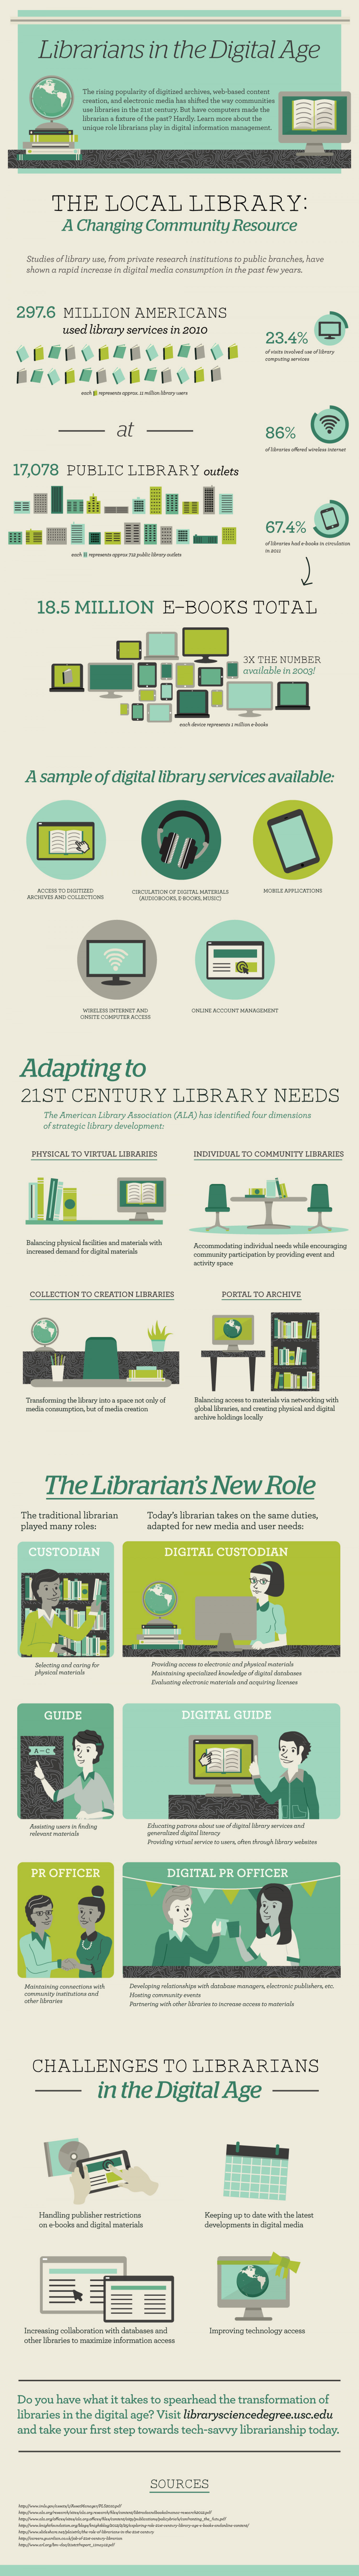 Librarians in the Digital Age Infographic